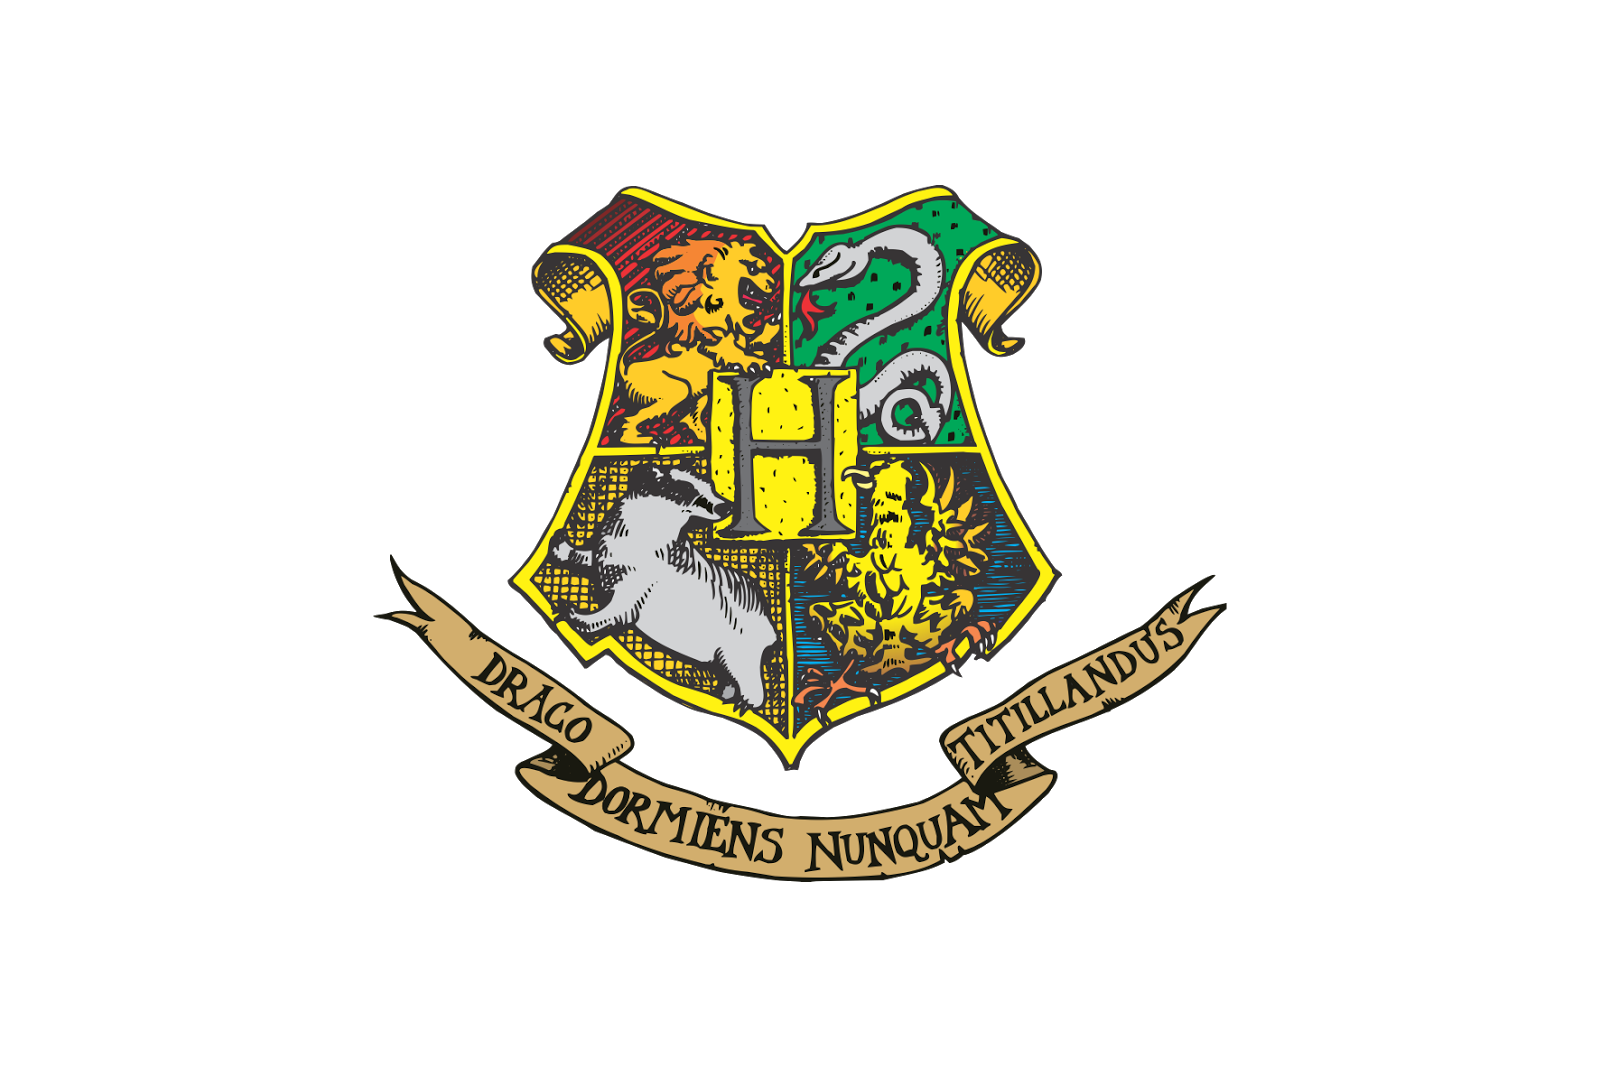 Harry potter crest png. Hogwarts and the deathly